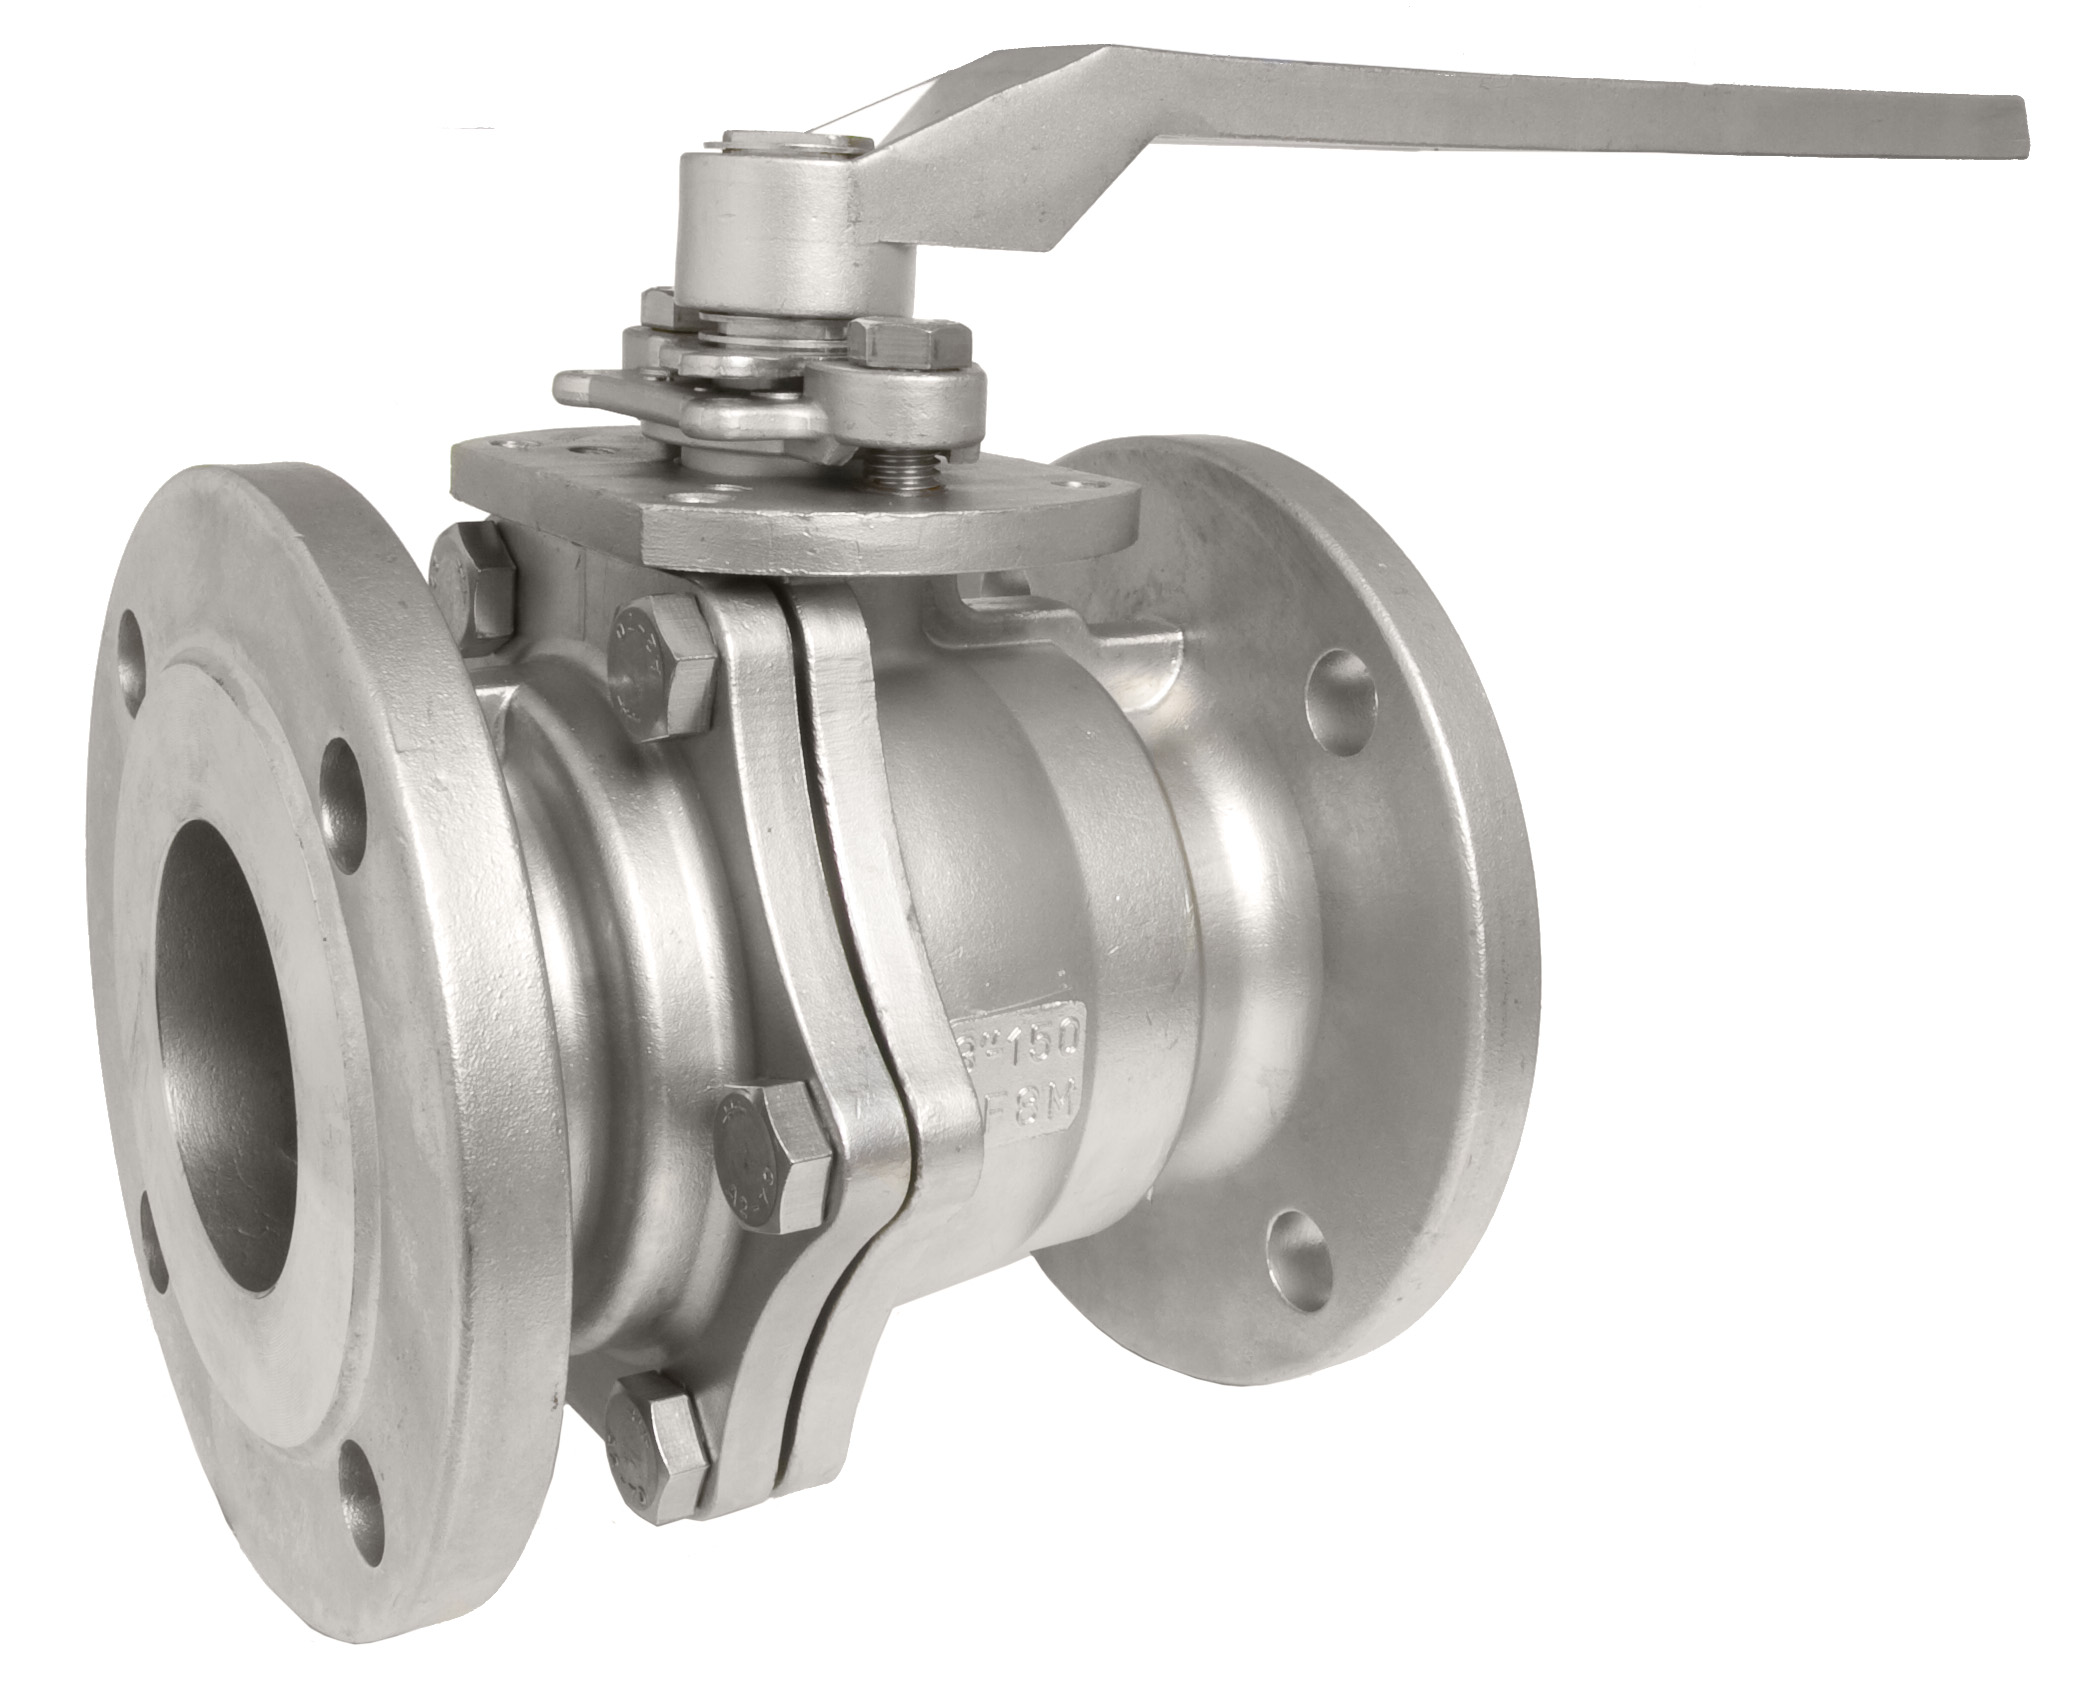 2 PC Ball Valve Flanged End..jpg